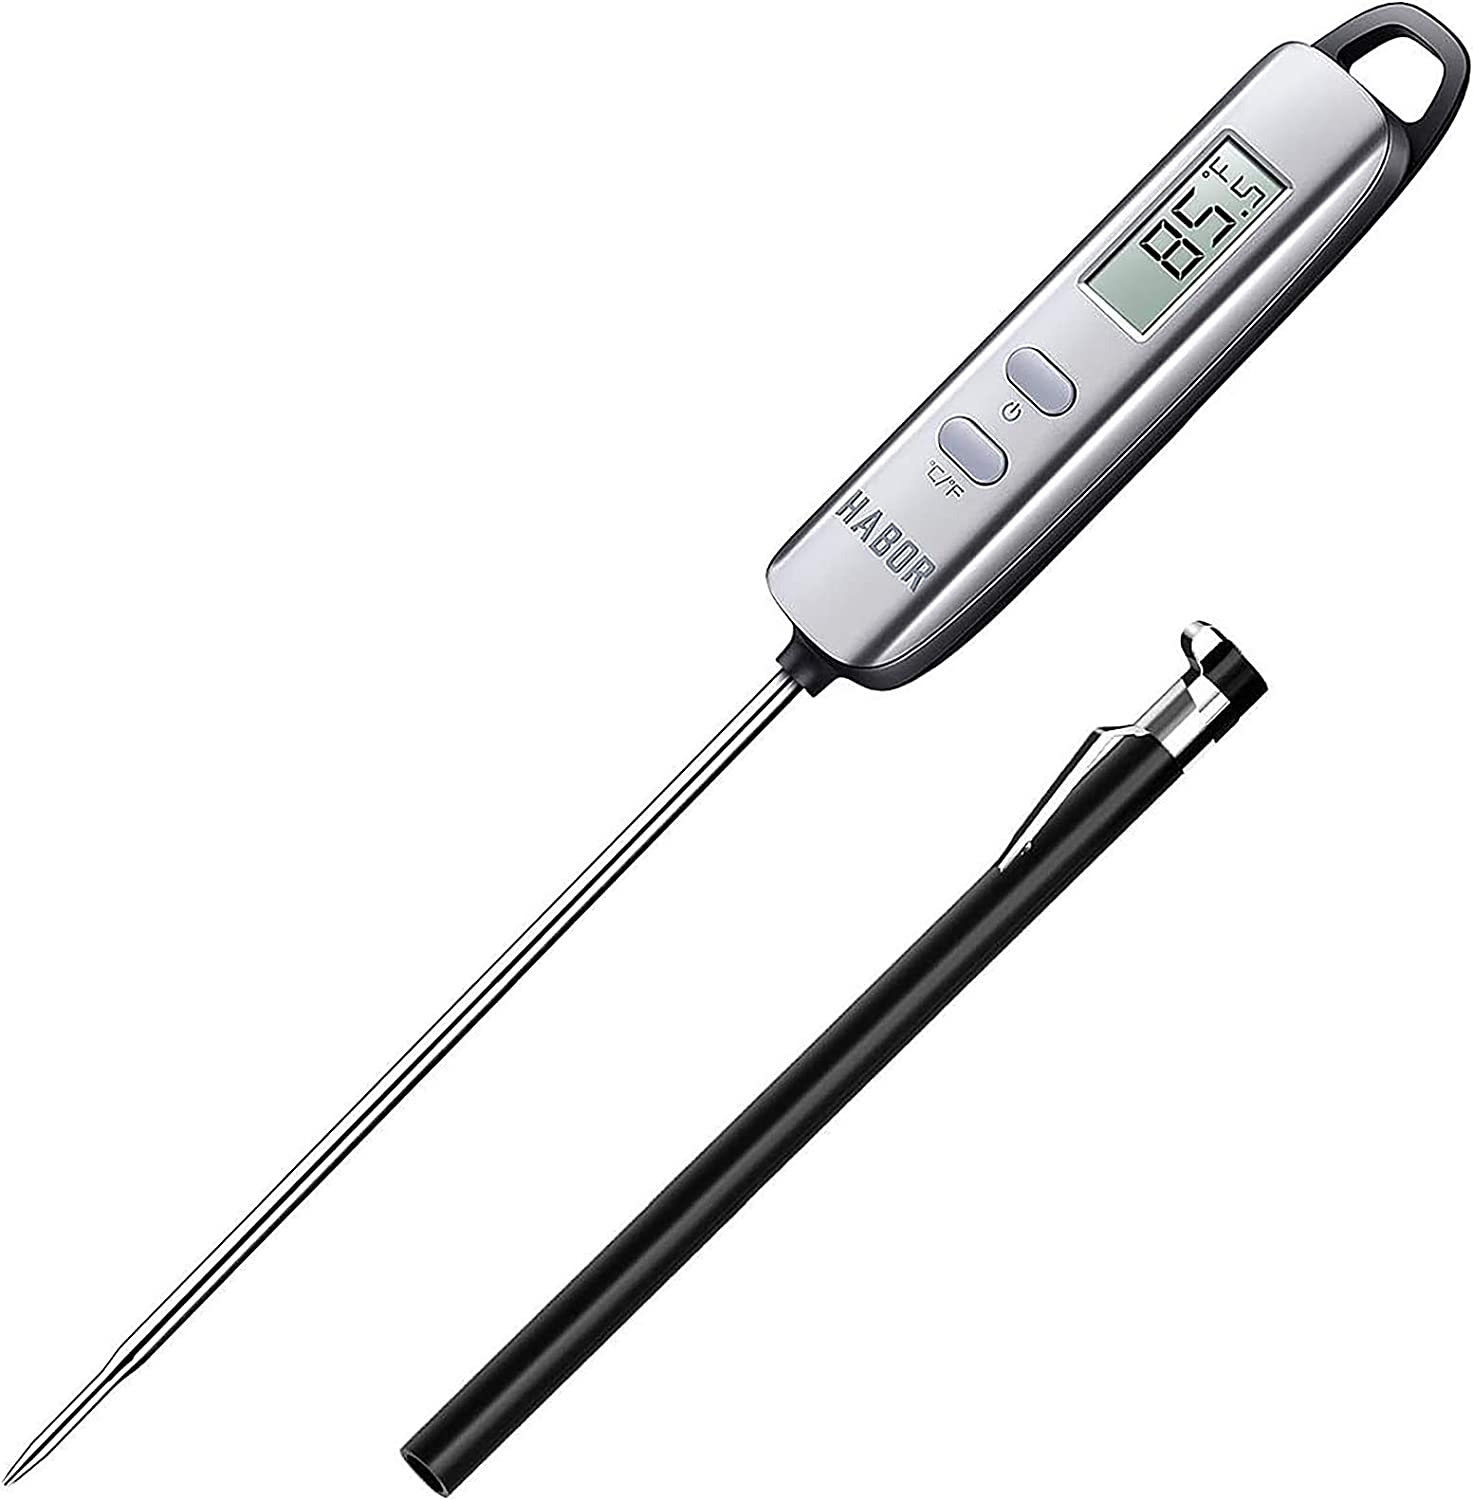 Habor 022 Meat Thermometer, Instant Read Thermometer Digital Cooking Thermometer, Candy Thermometer with Super Long Probe for Kitchen BBQ Grill Smoker Meat Oil Milk Yogurt Temperature: Kitchen & Dining